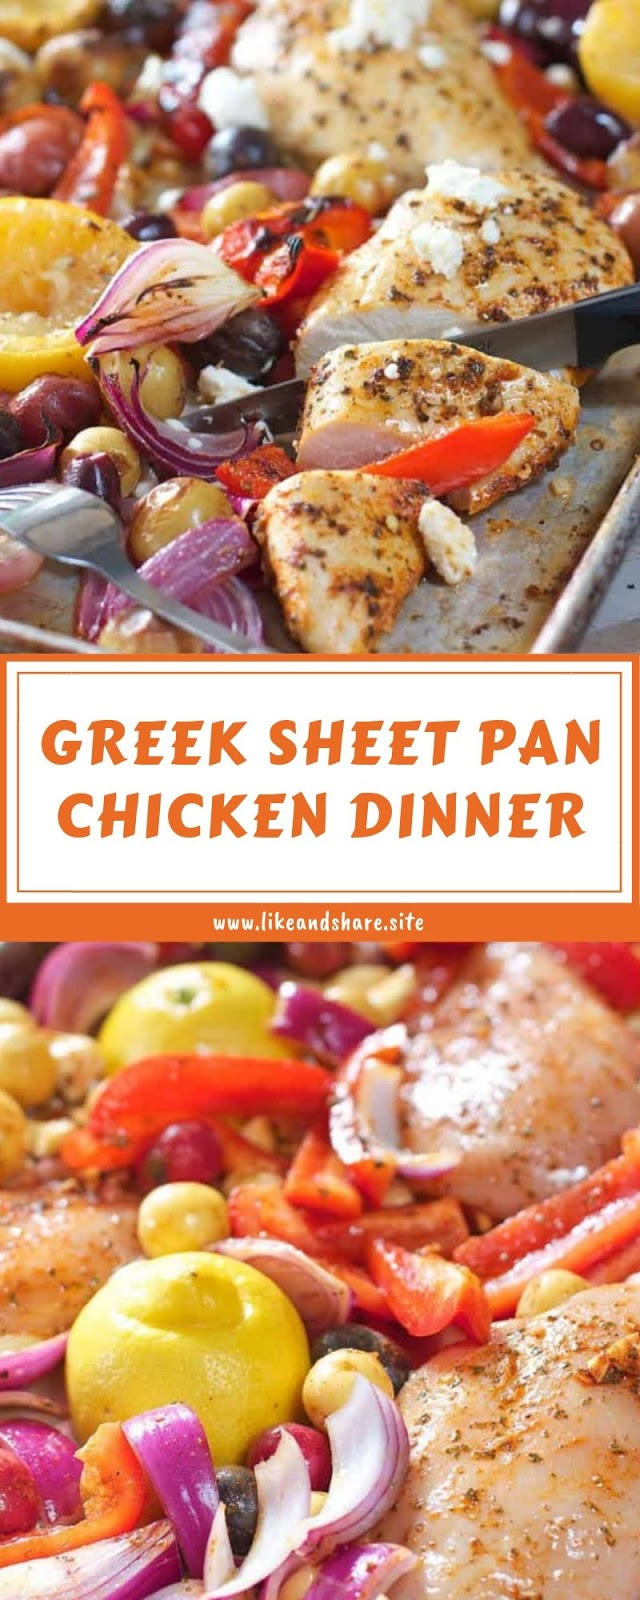 GREEK SHEET PAN CHICKEN DINNER